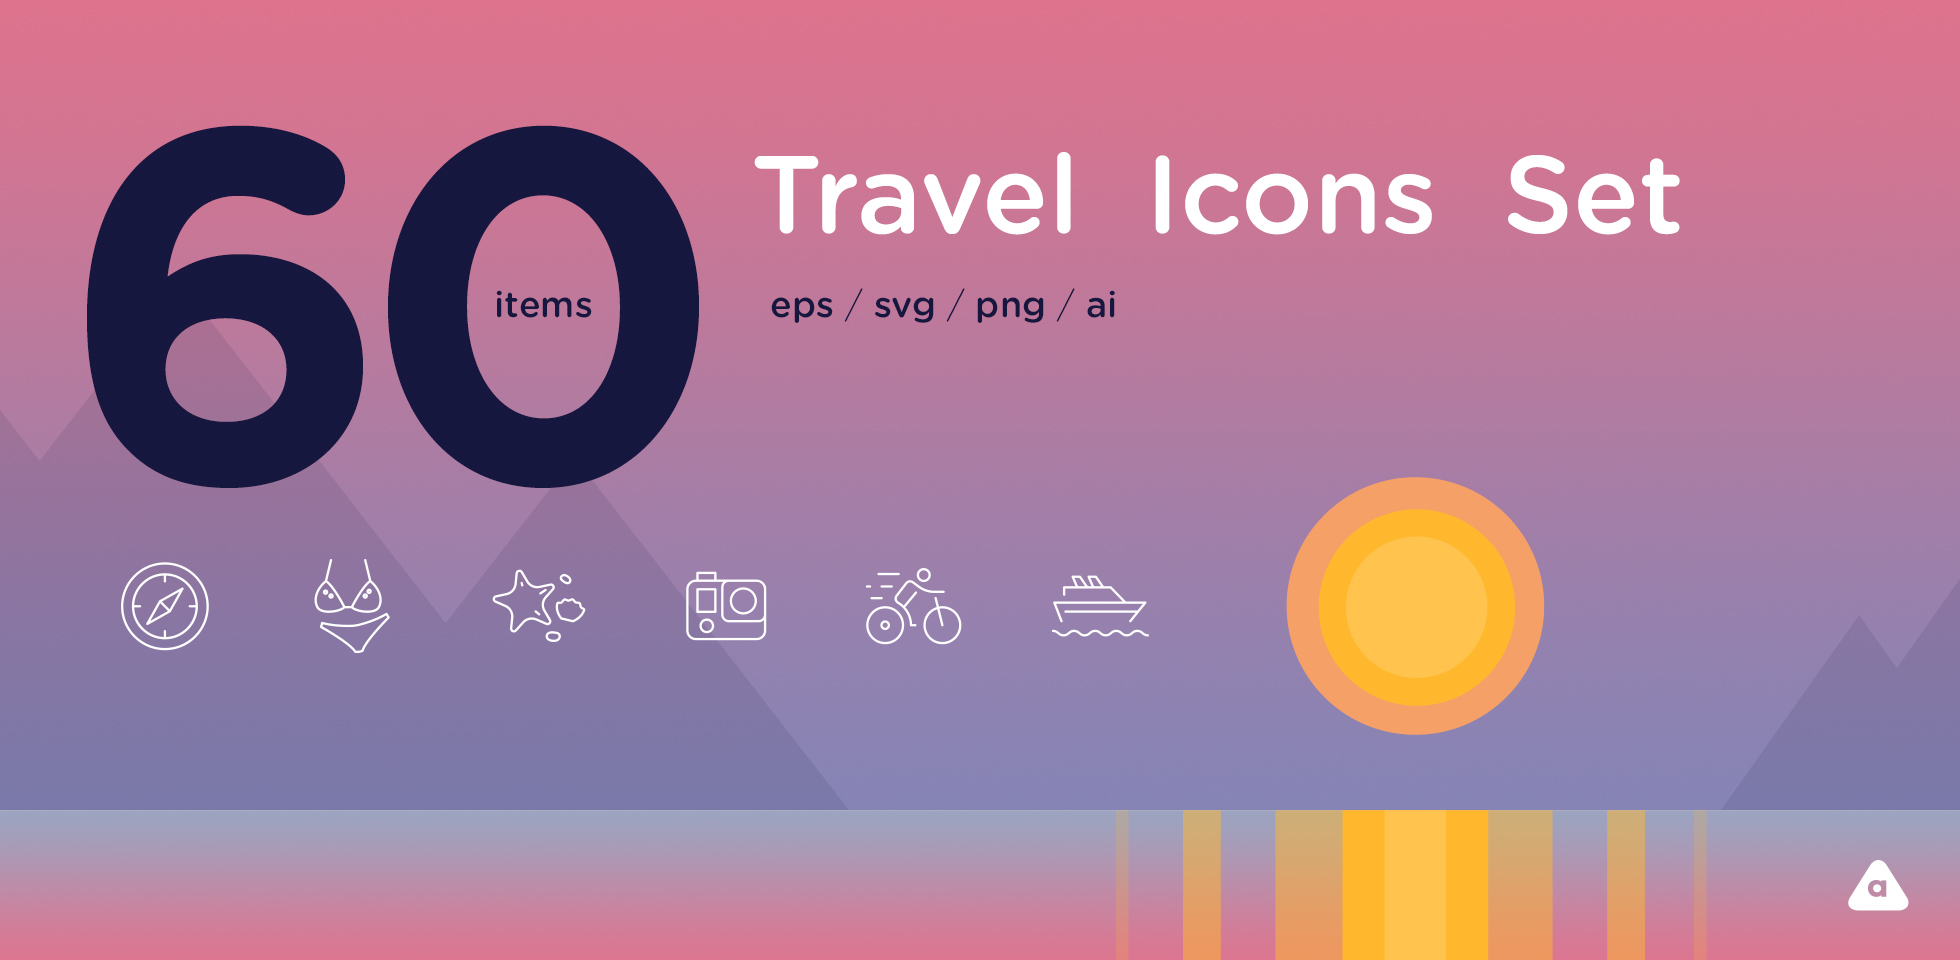 Free Download: Travel Icon Set